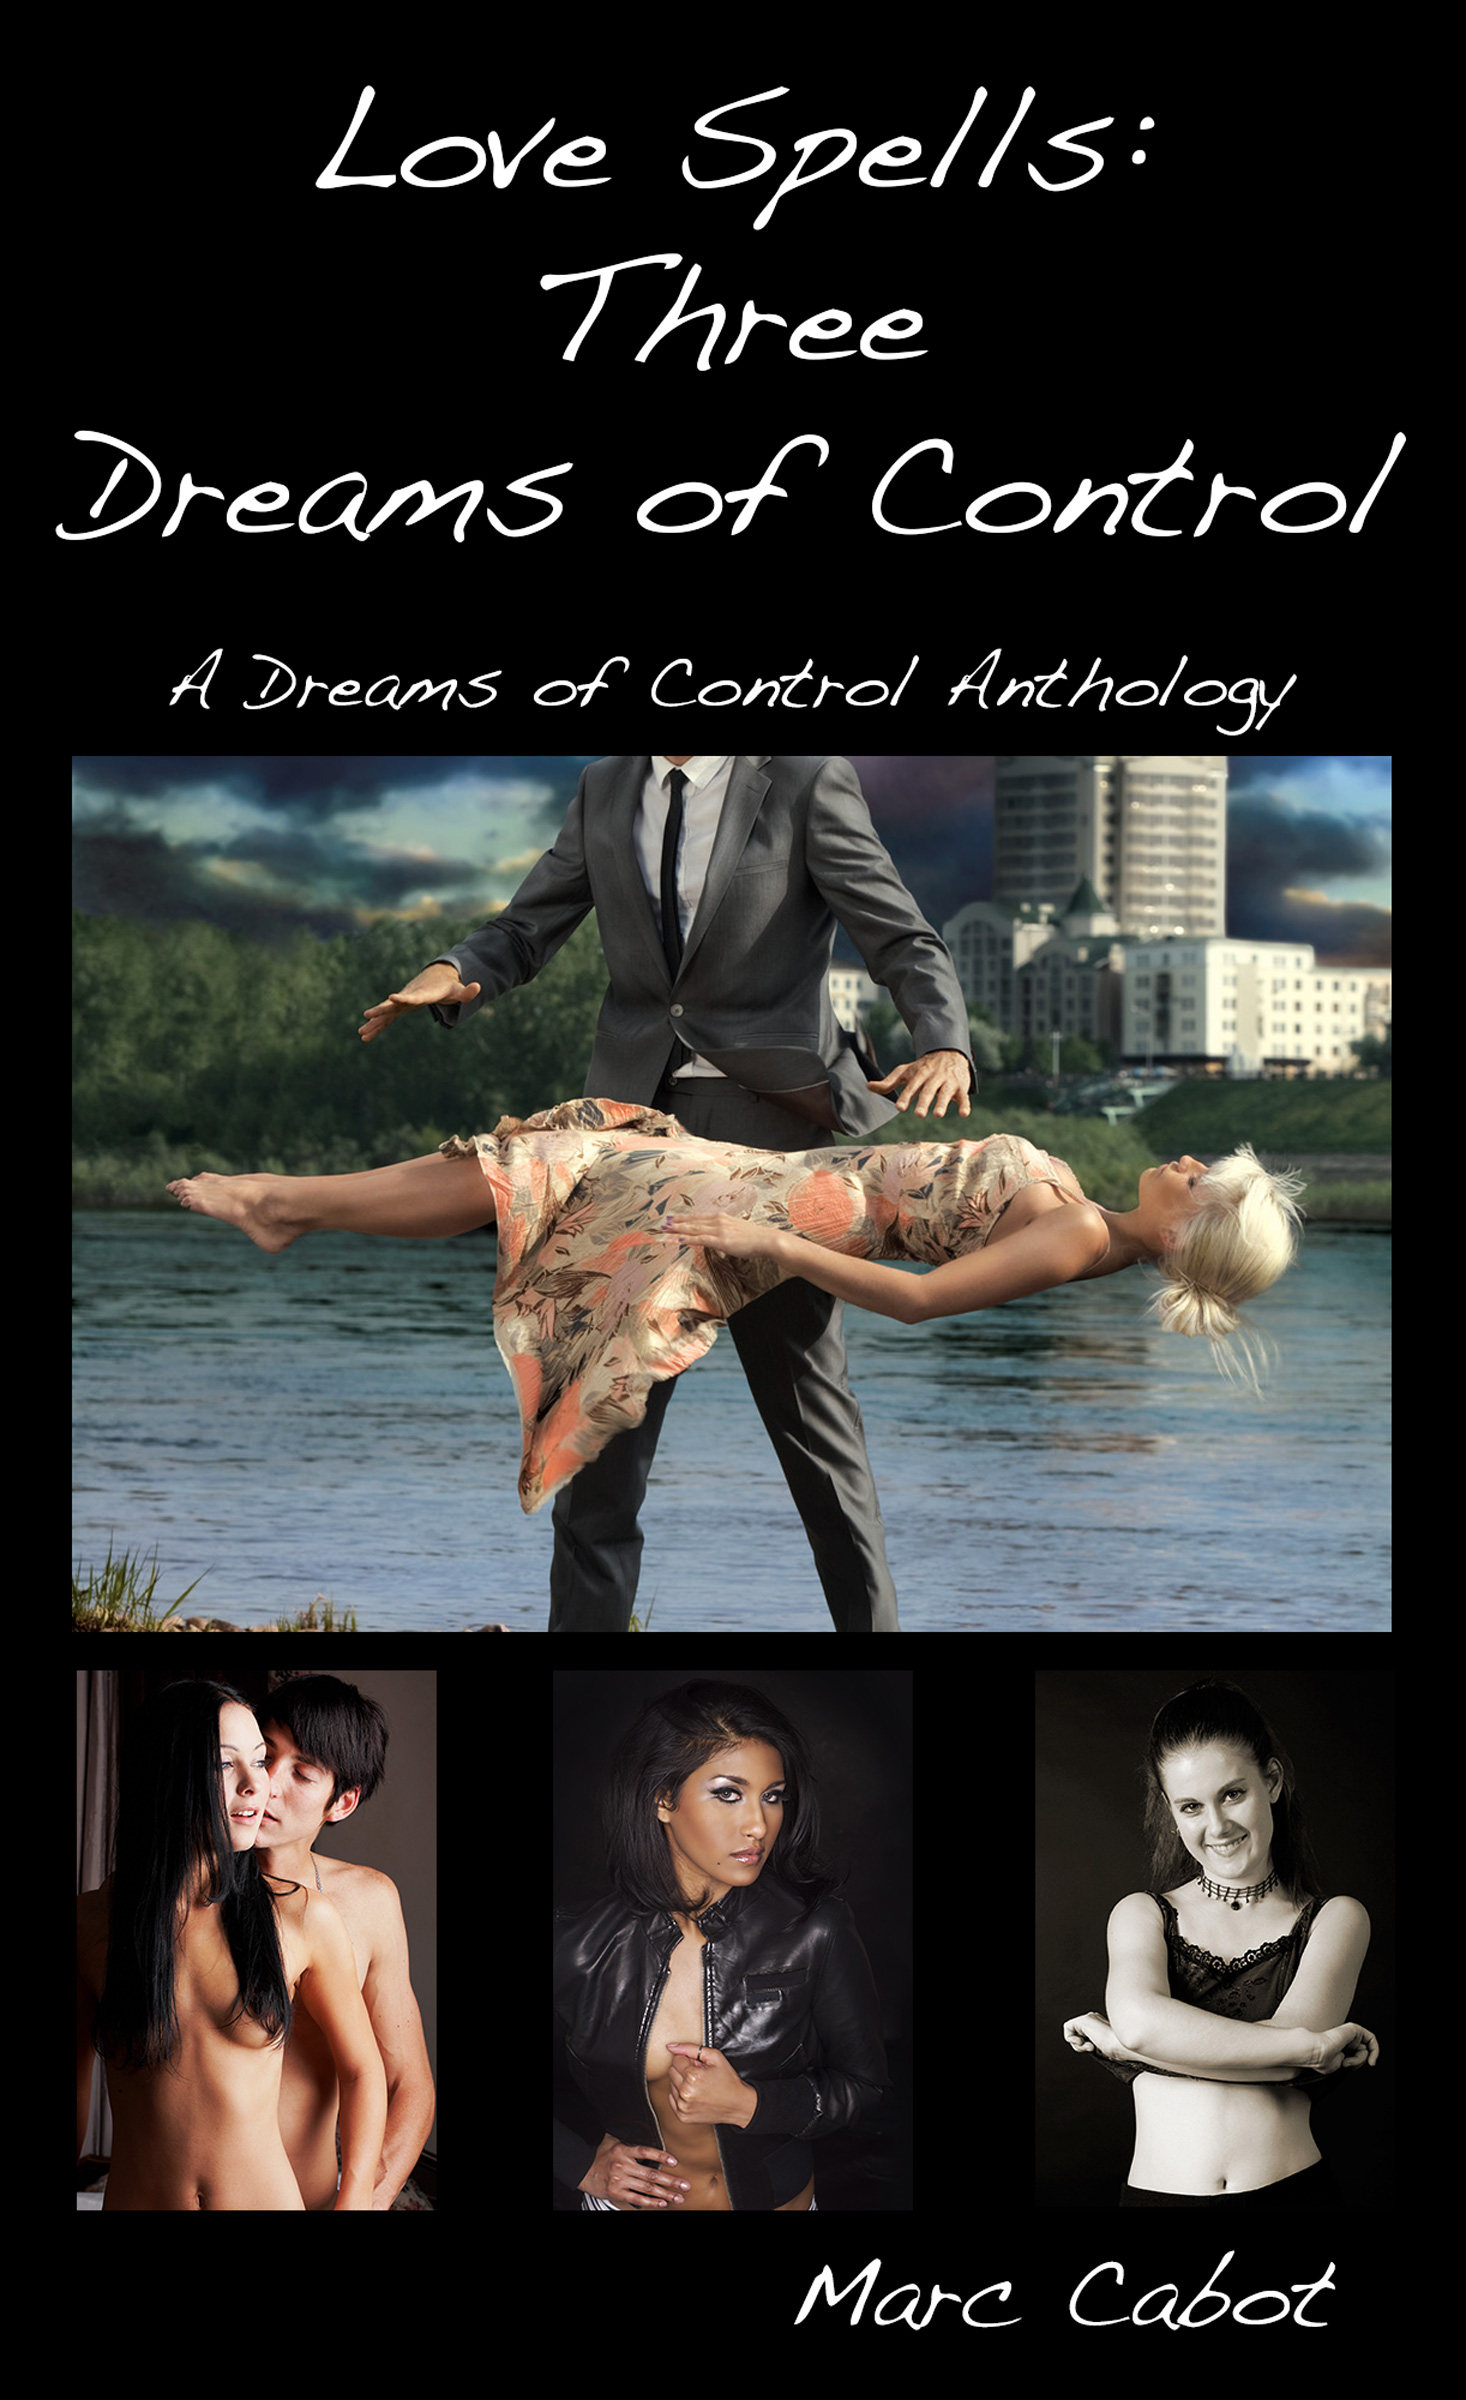 Love Spells: Three Dreams of Control